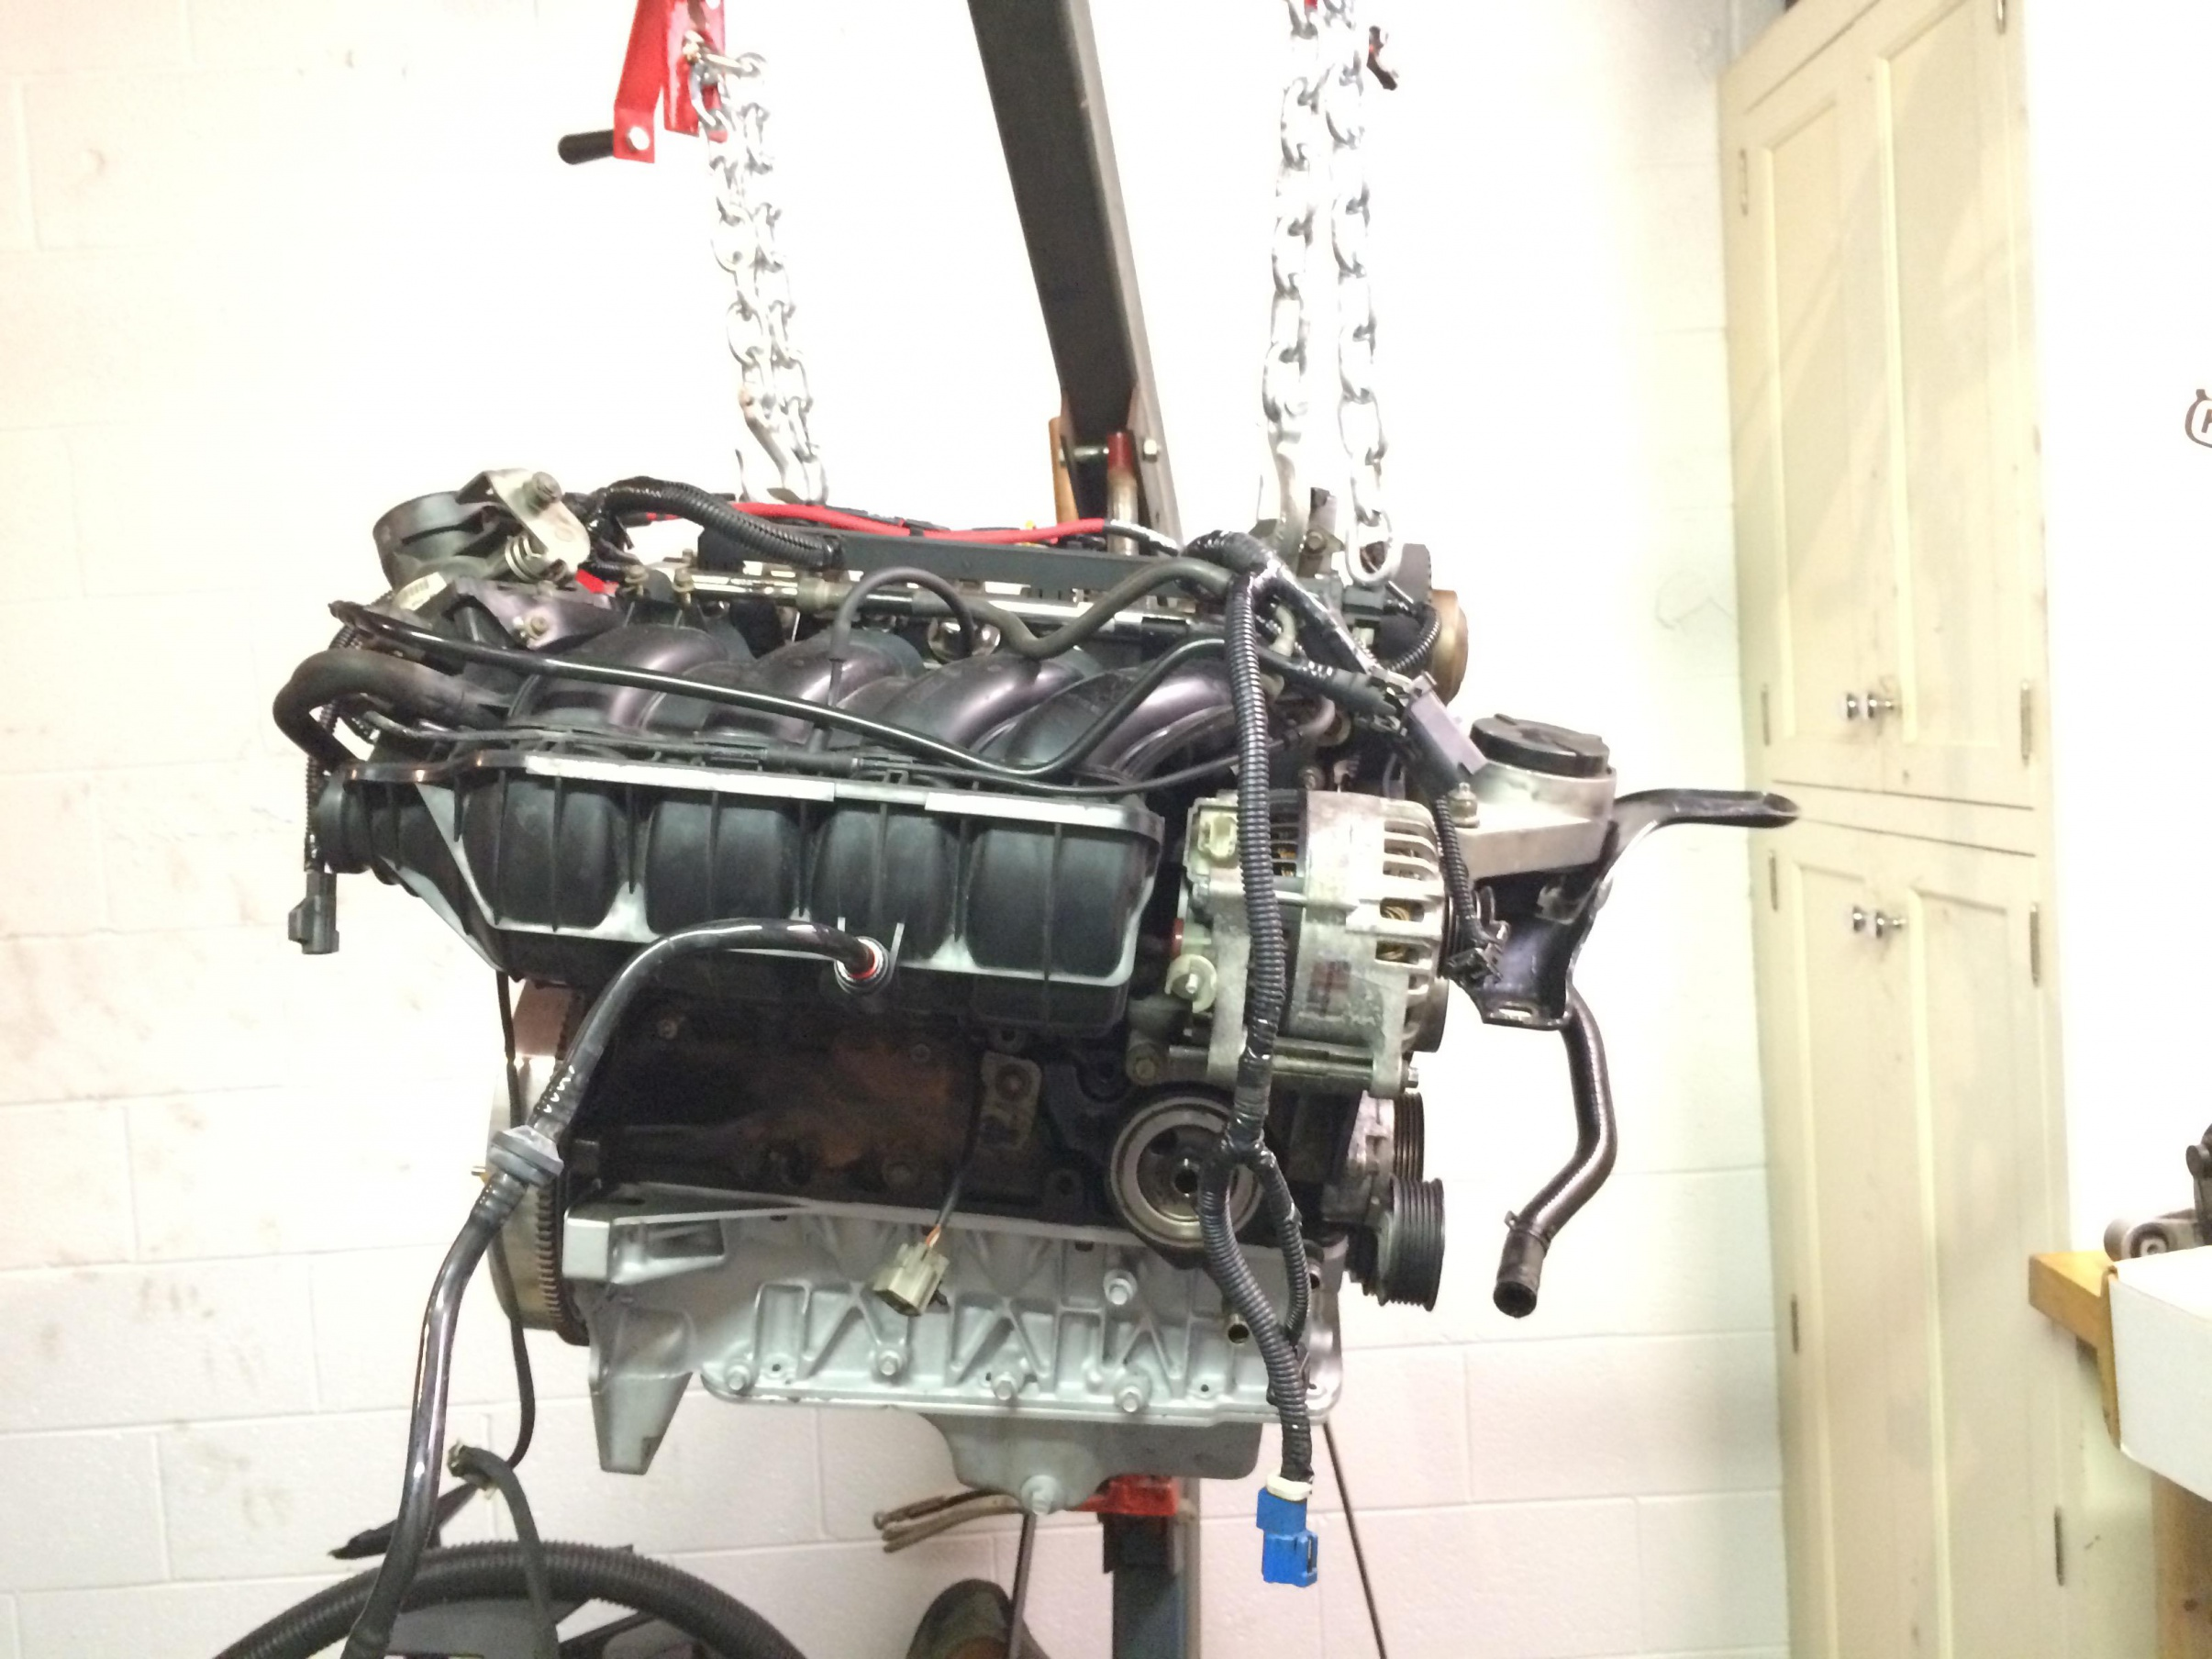 Svt rebuild and forced induction project-img_2498_1485951742446.jpg